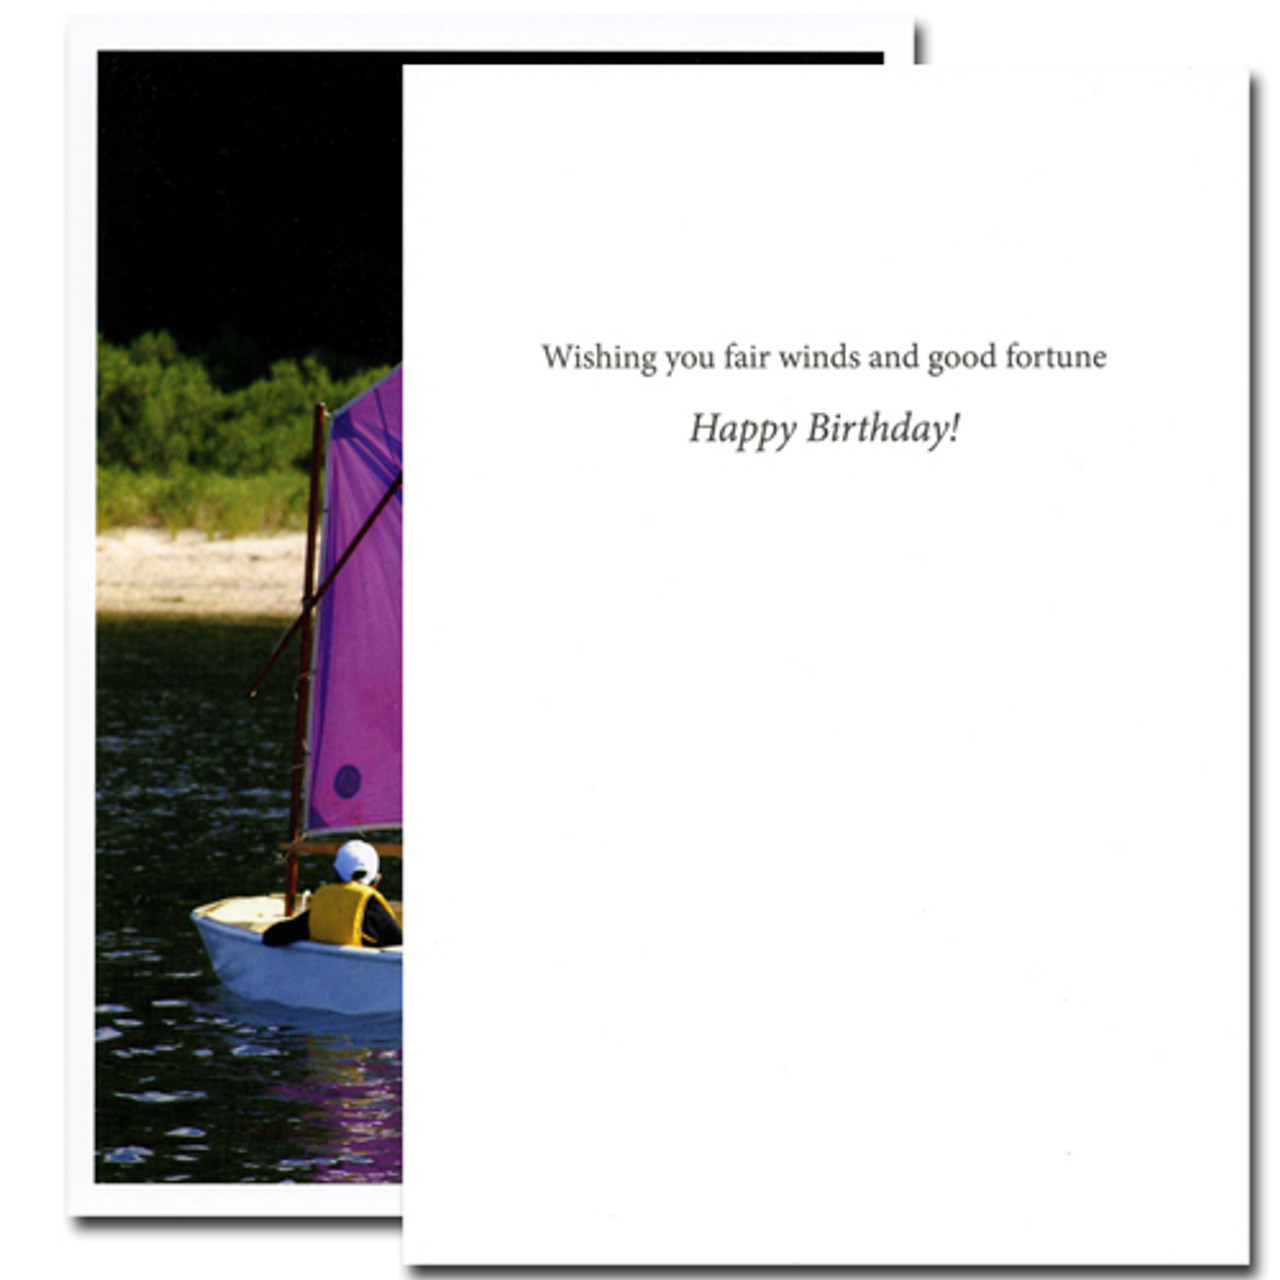 "Inside of Louisa May Alcott Quotation Birthday Card Sail My Ship inside has the words ""Wishing you fair winds and good fortune Happy Birthday!"""